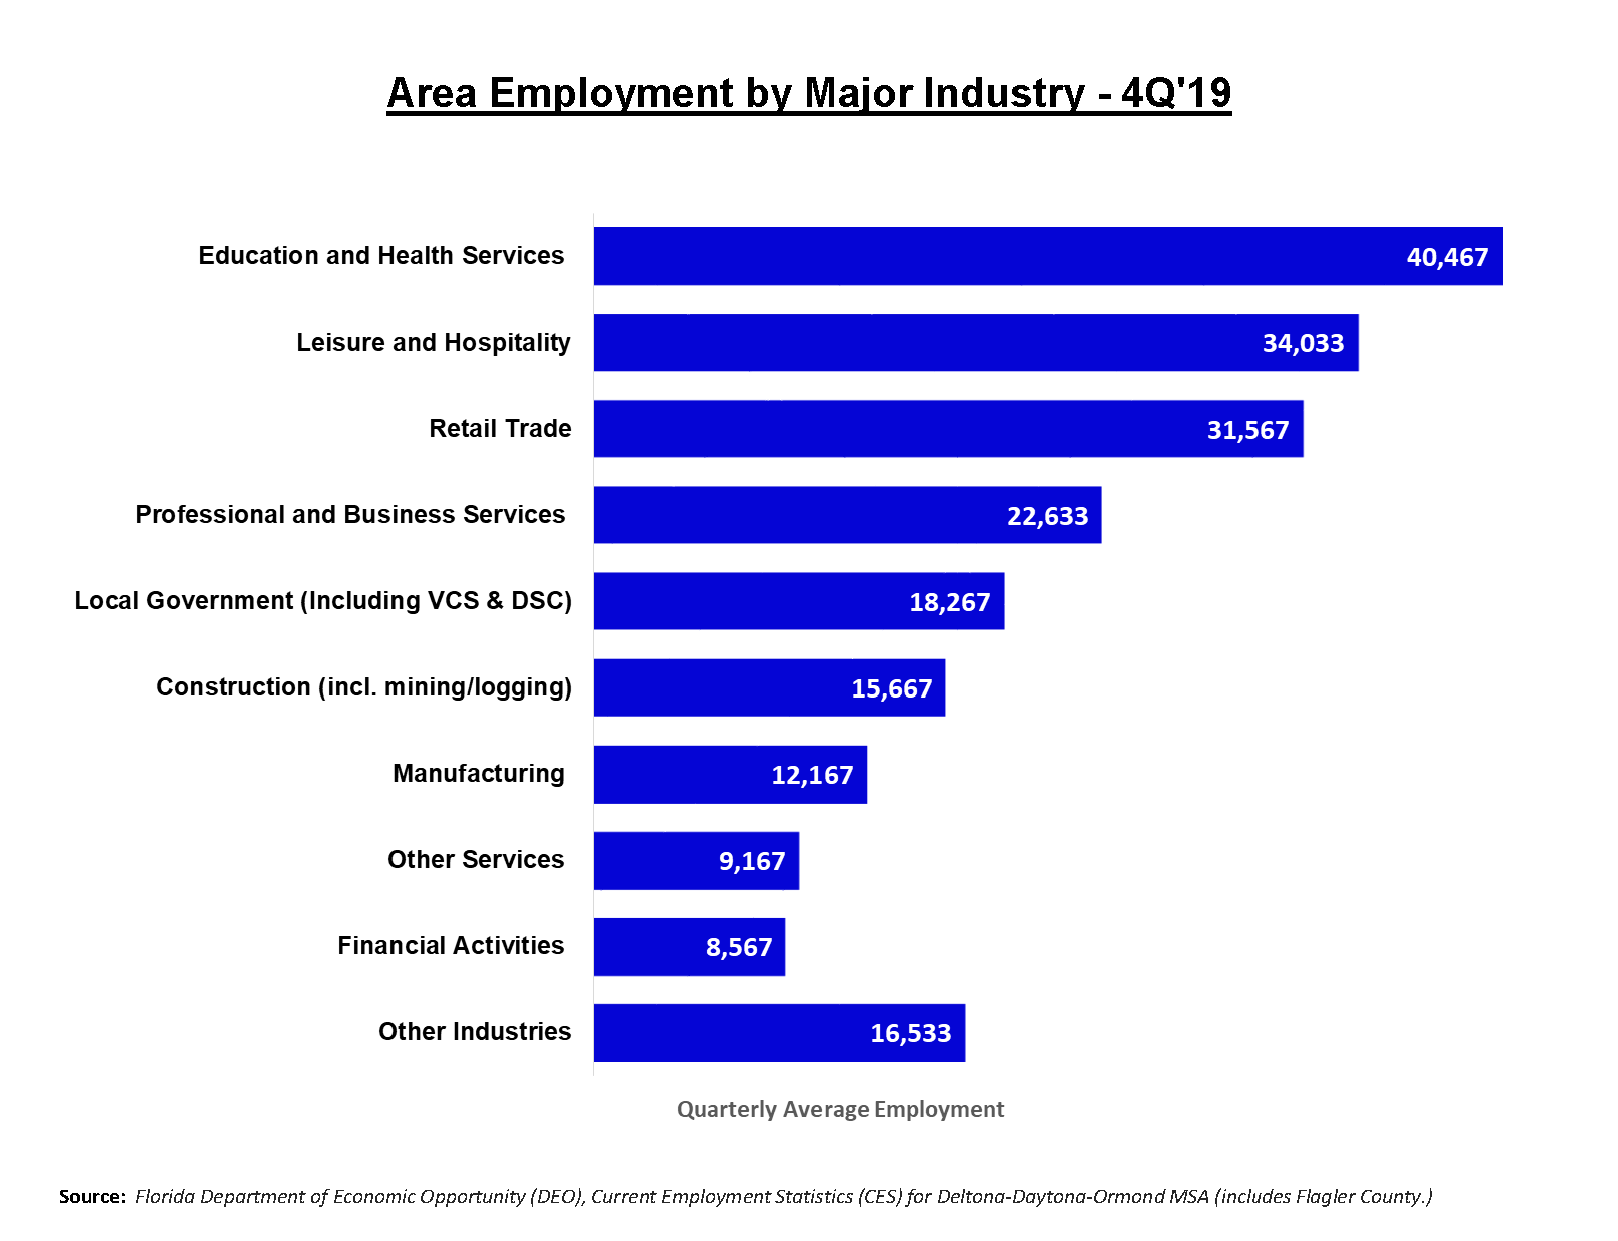 Area employment by major industry